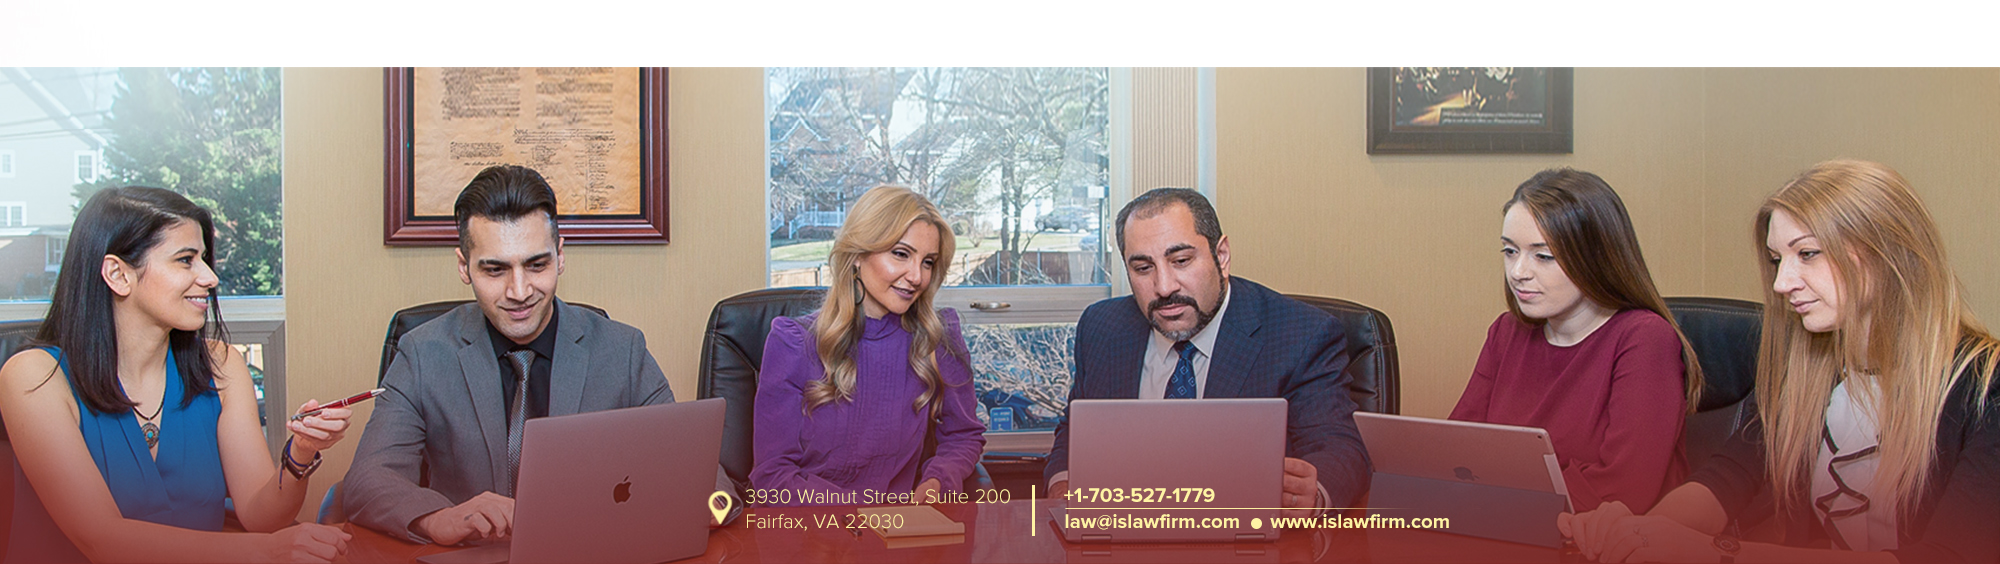 IS Law Firm lawyer serving DC VA Maryland area